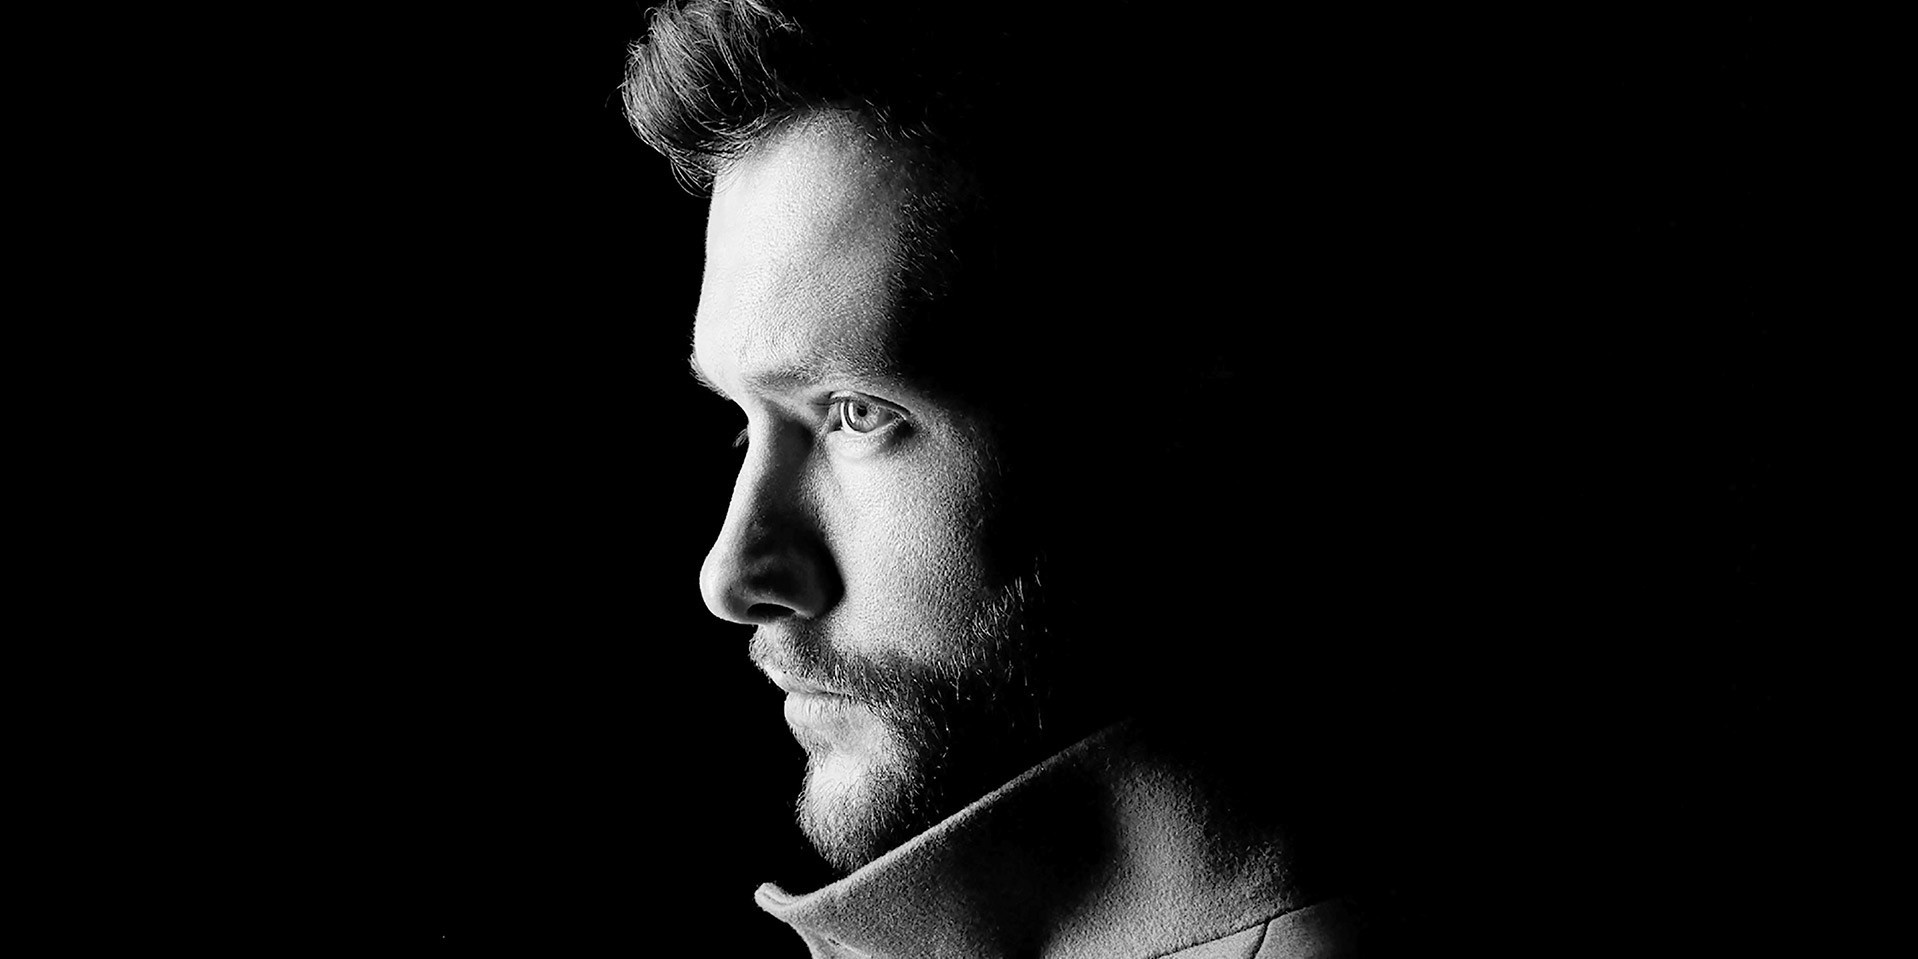 Calum Scott returns to Manila for one night concert